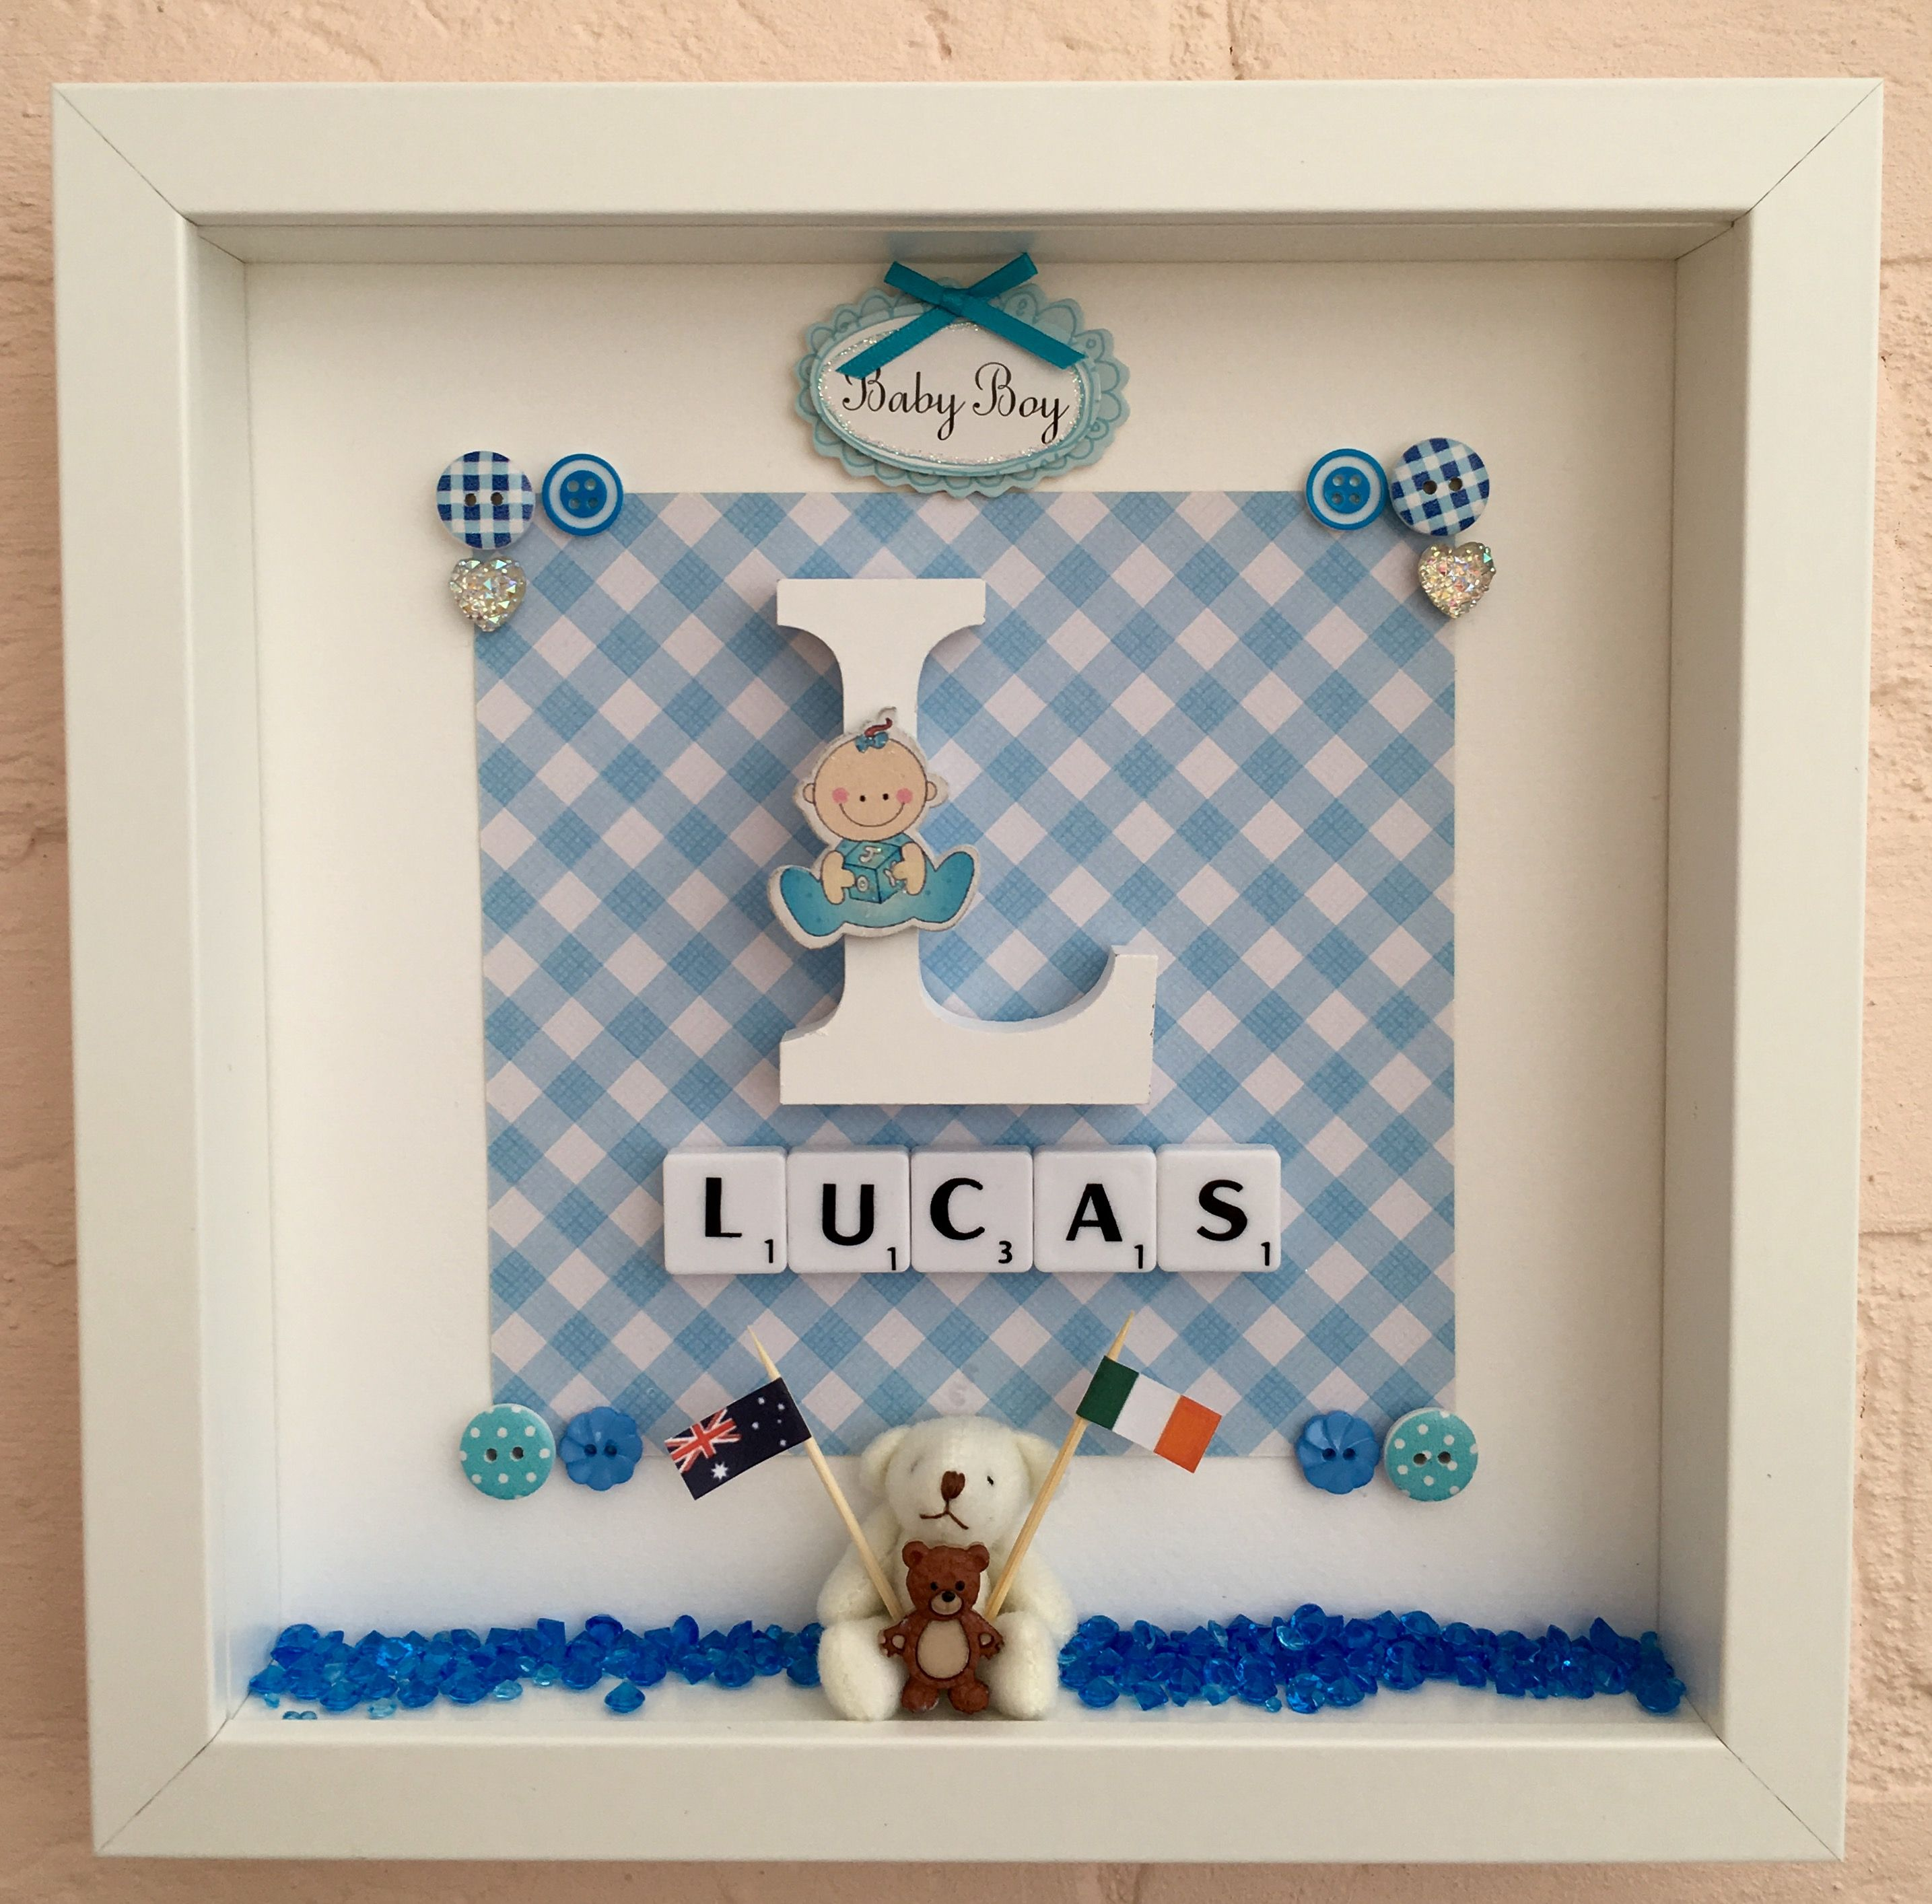 Pin by pdraign n scanlain on crafts pinterest crafts personalised christening gifts baby christening gifts baptism gifts personalised baby baby gifts name frame box frames teddy bear children s negle Images